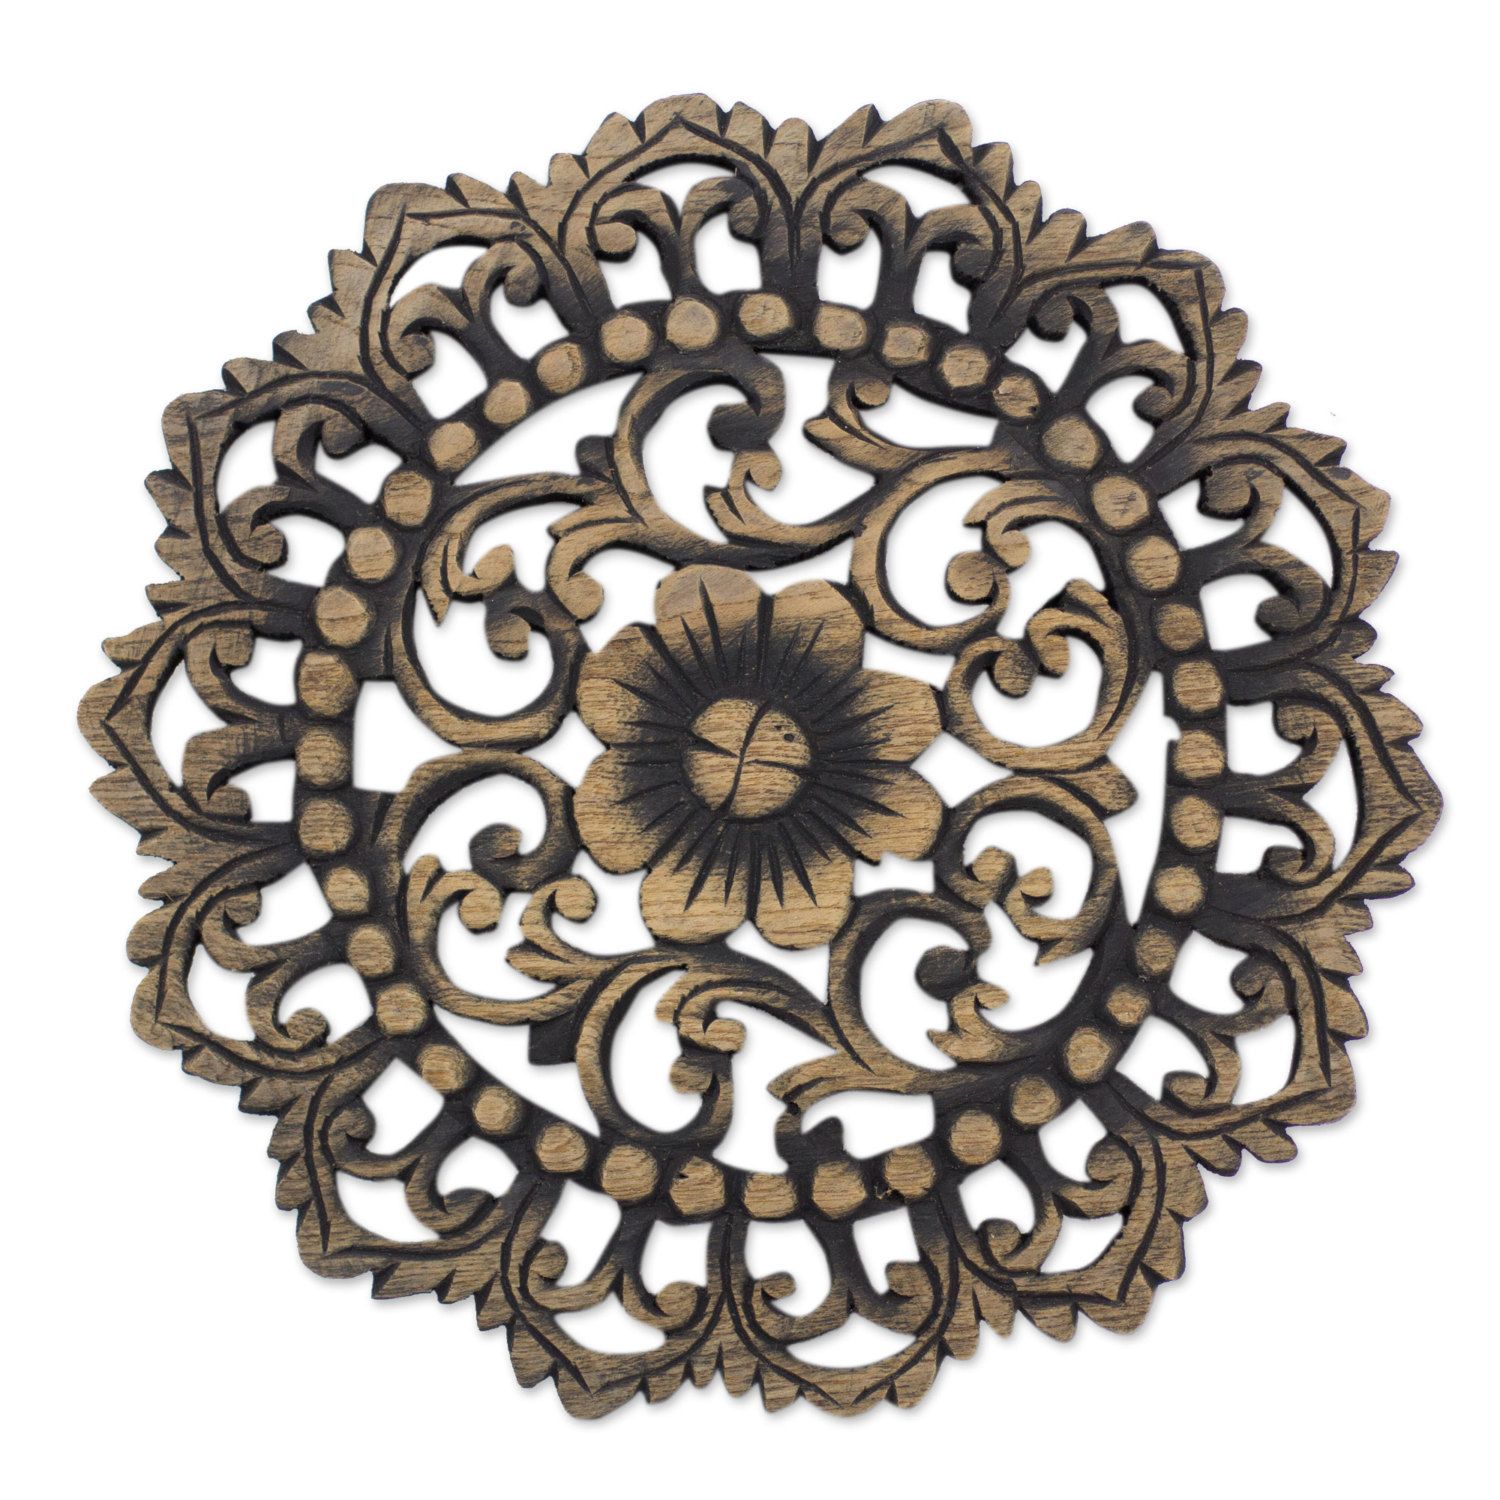 Wood Decorative Wall Art Buy Decorative Wooden Wall Relief Panel Online